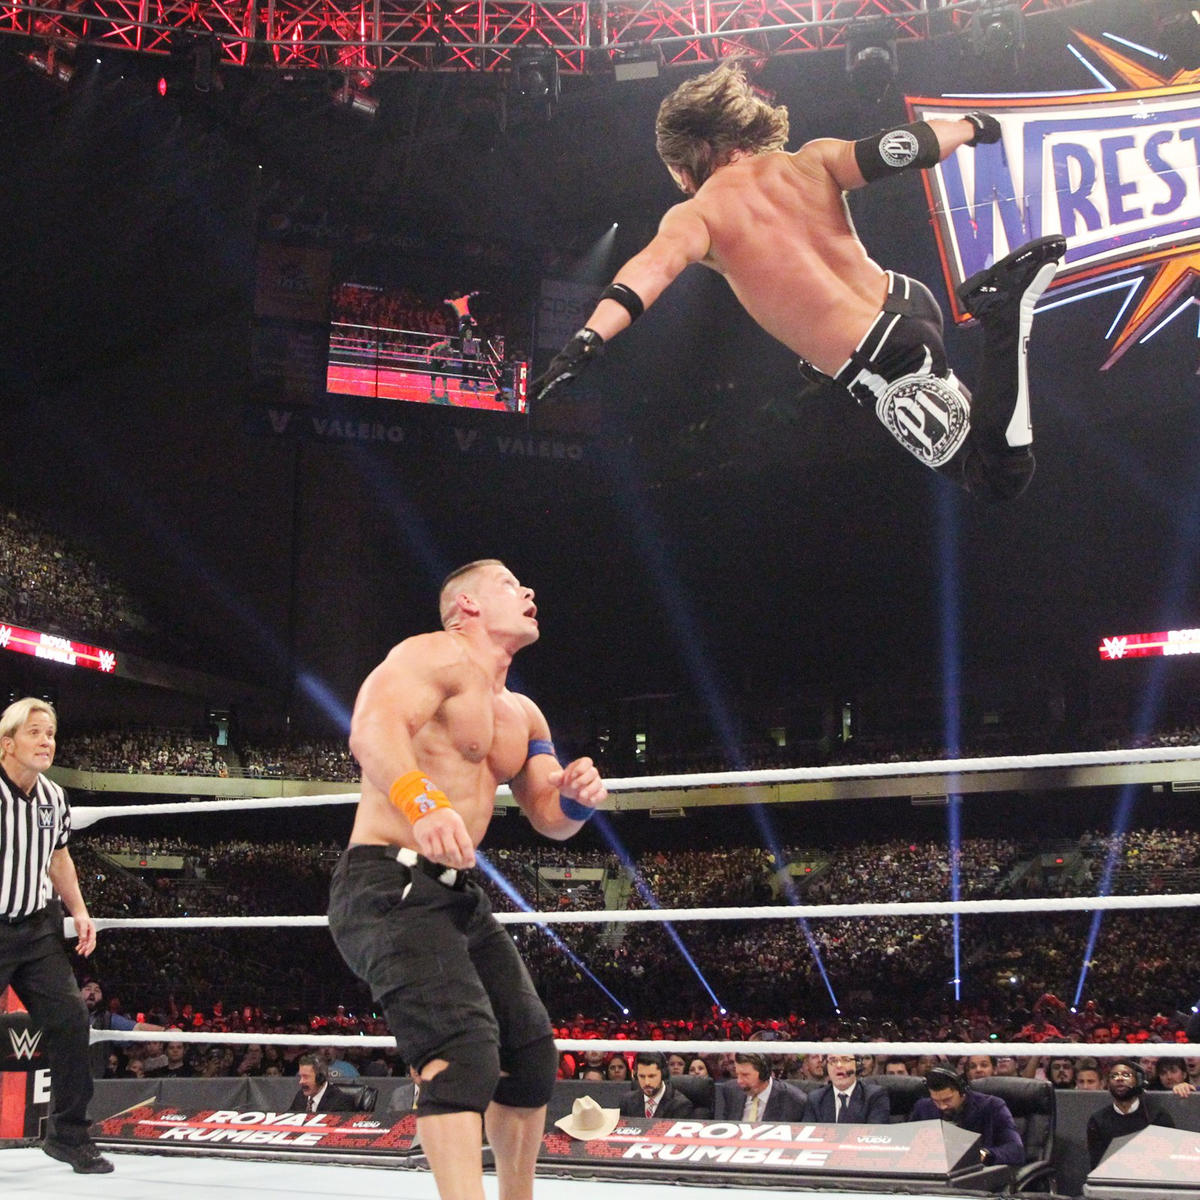 Styles soars high to increase the impact of his Phenomenal Forearm.